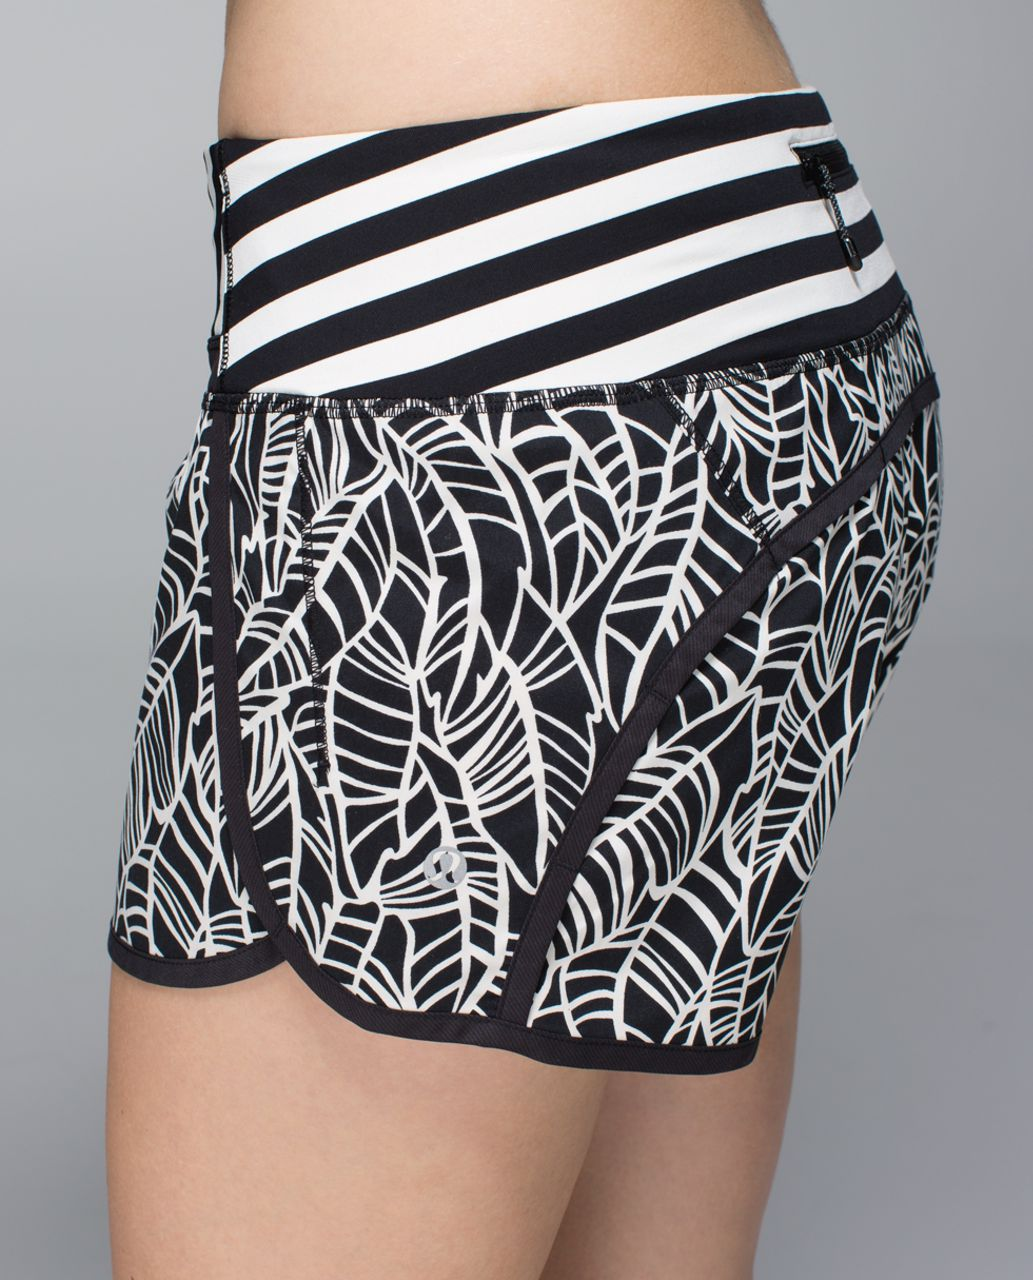 Lululemon Run Times Short *4-way stretch - Pretty Palm Black Angel Wing / Black / Apex Stripe Black Angel Wing